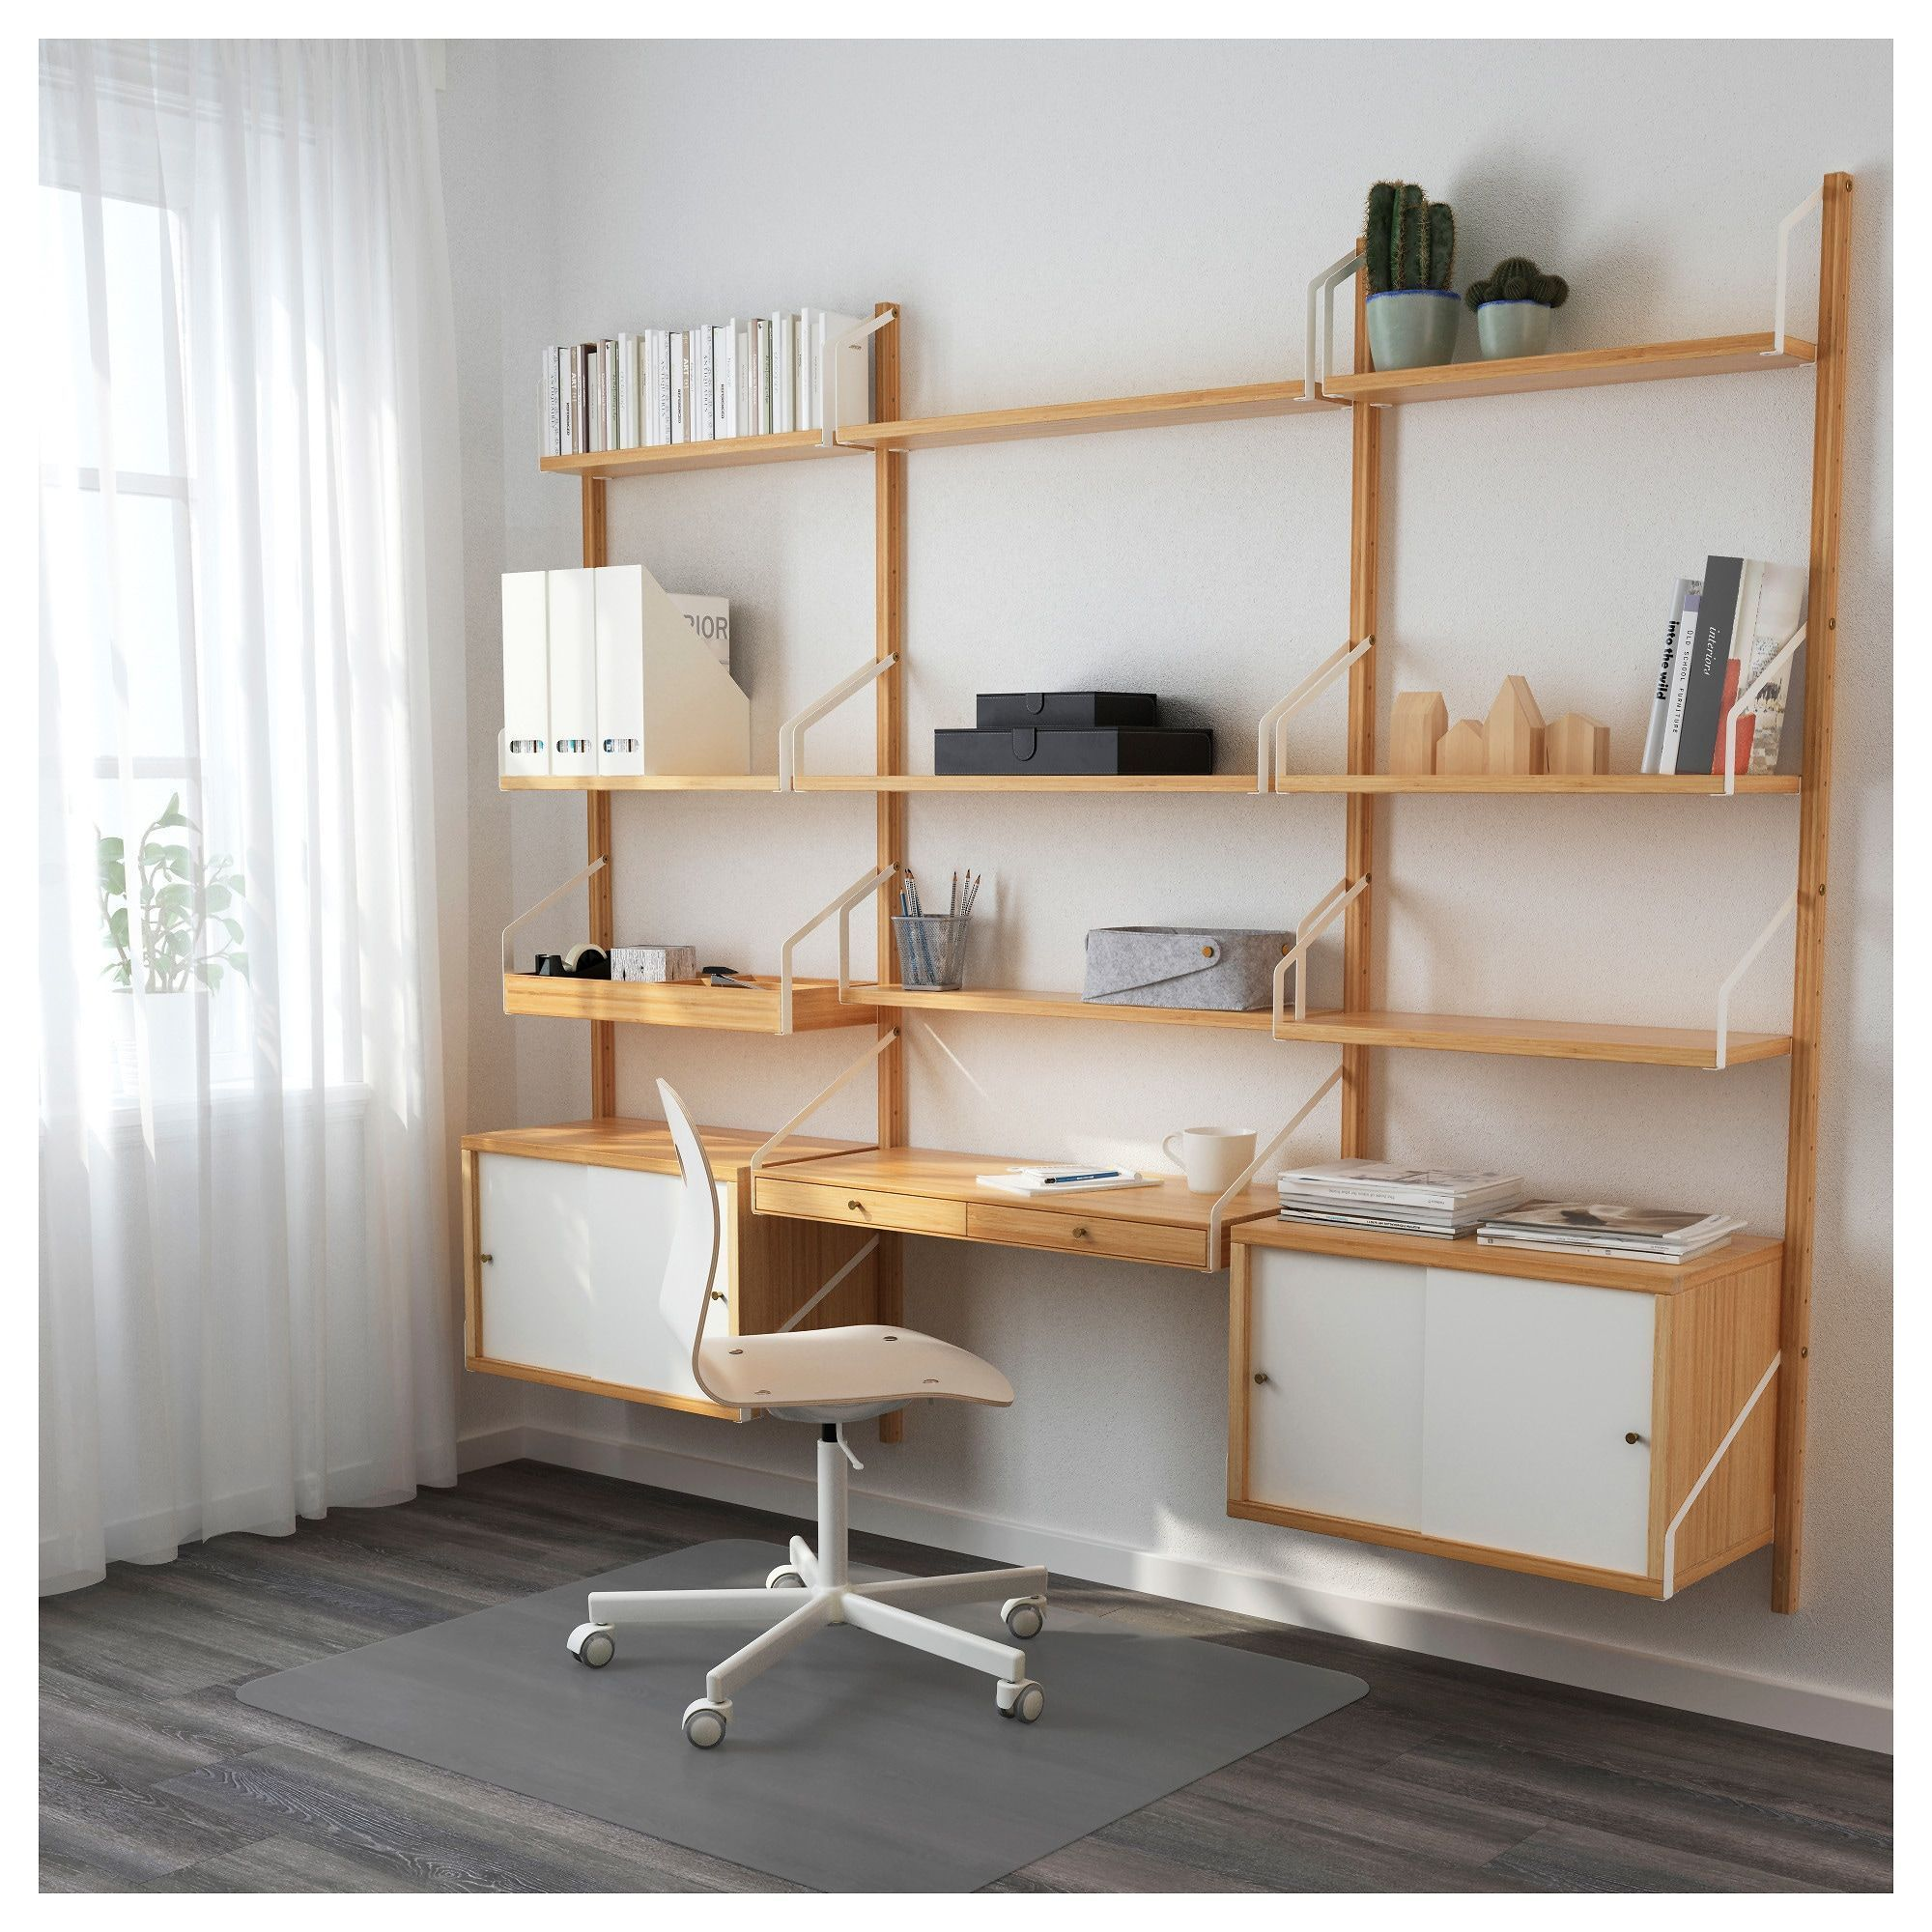 I Really Like This Ikea Floating Shelving System With Built In